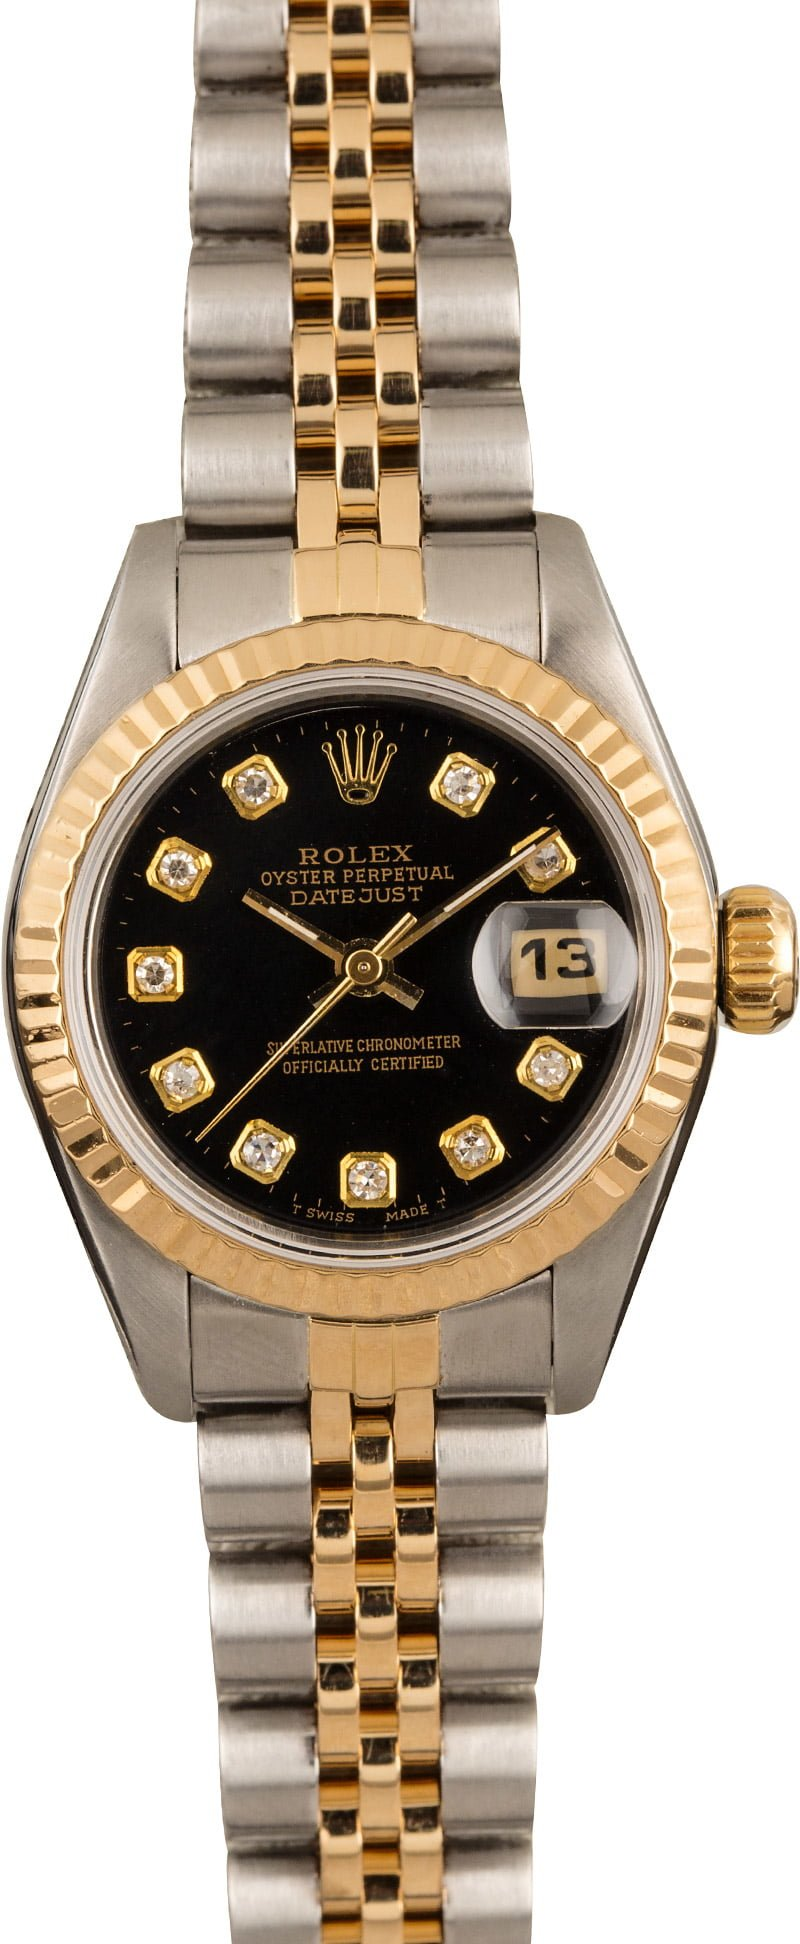 ce8c7ddf71c Ladies Rolex DateJust 69173 Diamond Dial - Buy it Now For $3880 at Bob's  Watches